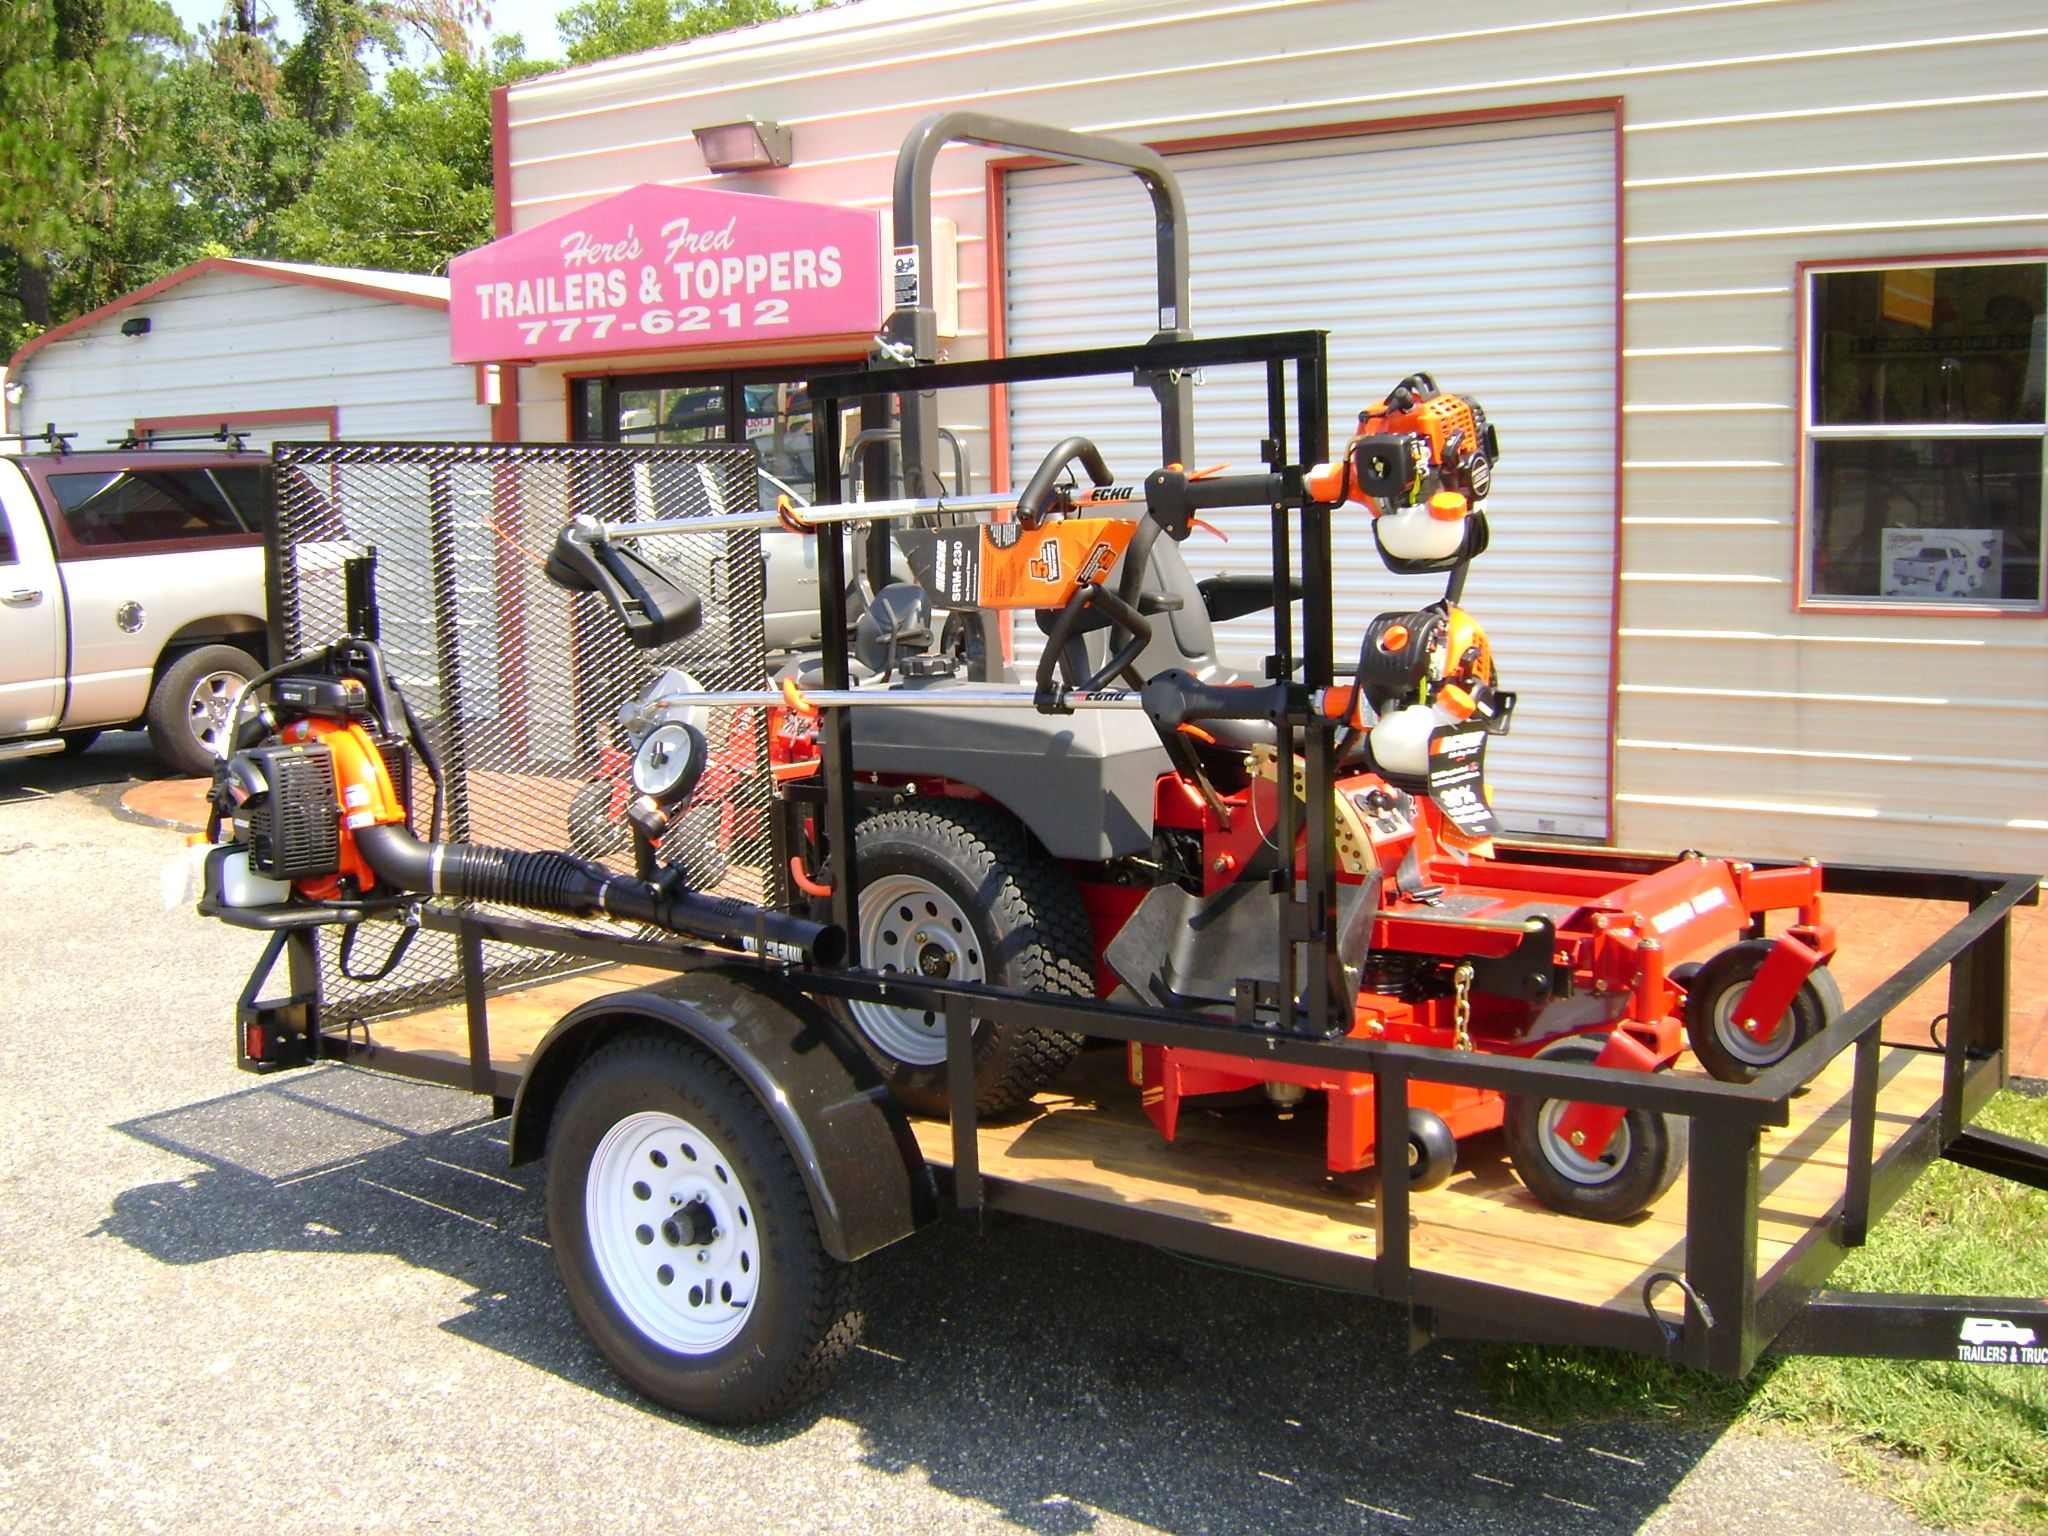 utility trailers are perfect for hauling lawn equipment